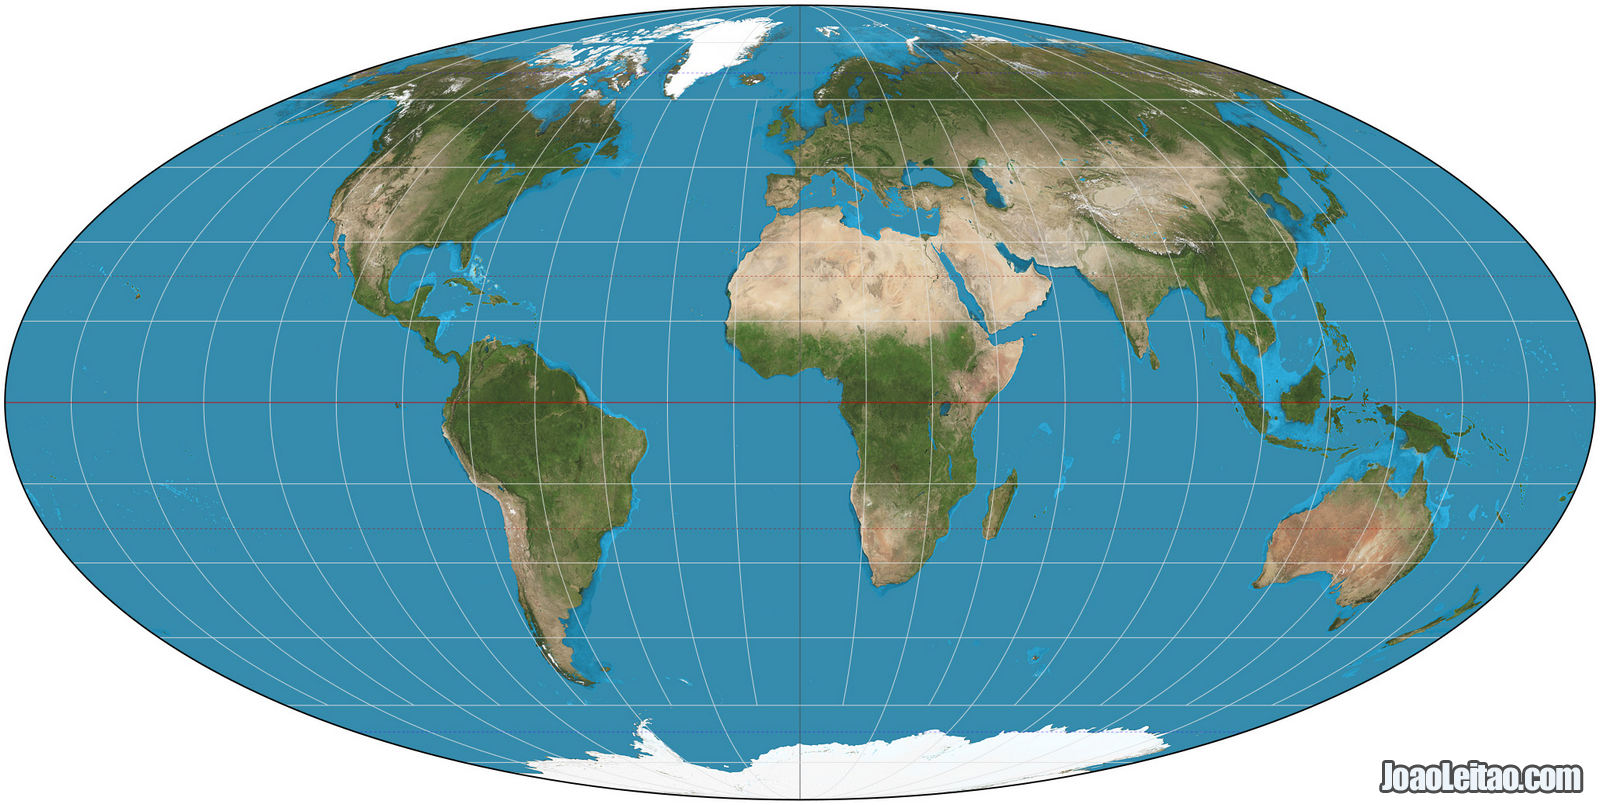 World map with the Mollweide projection